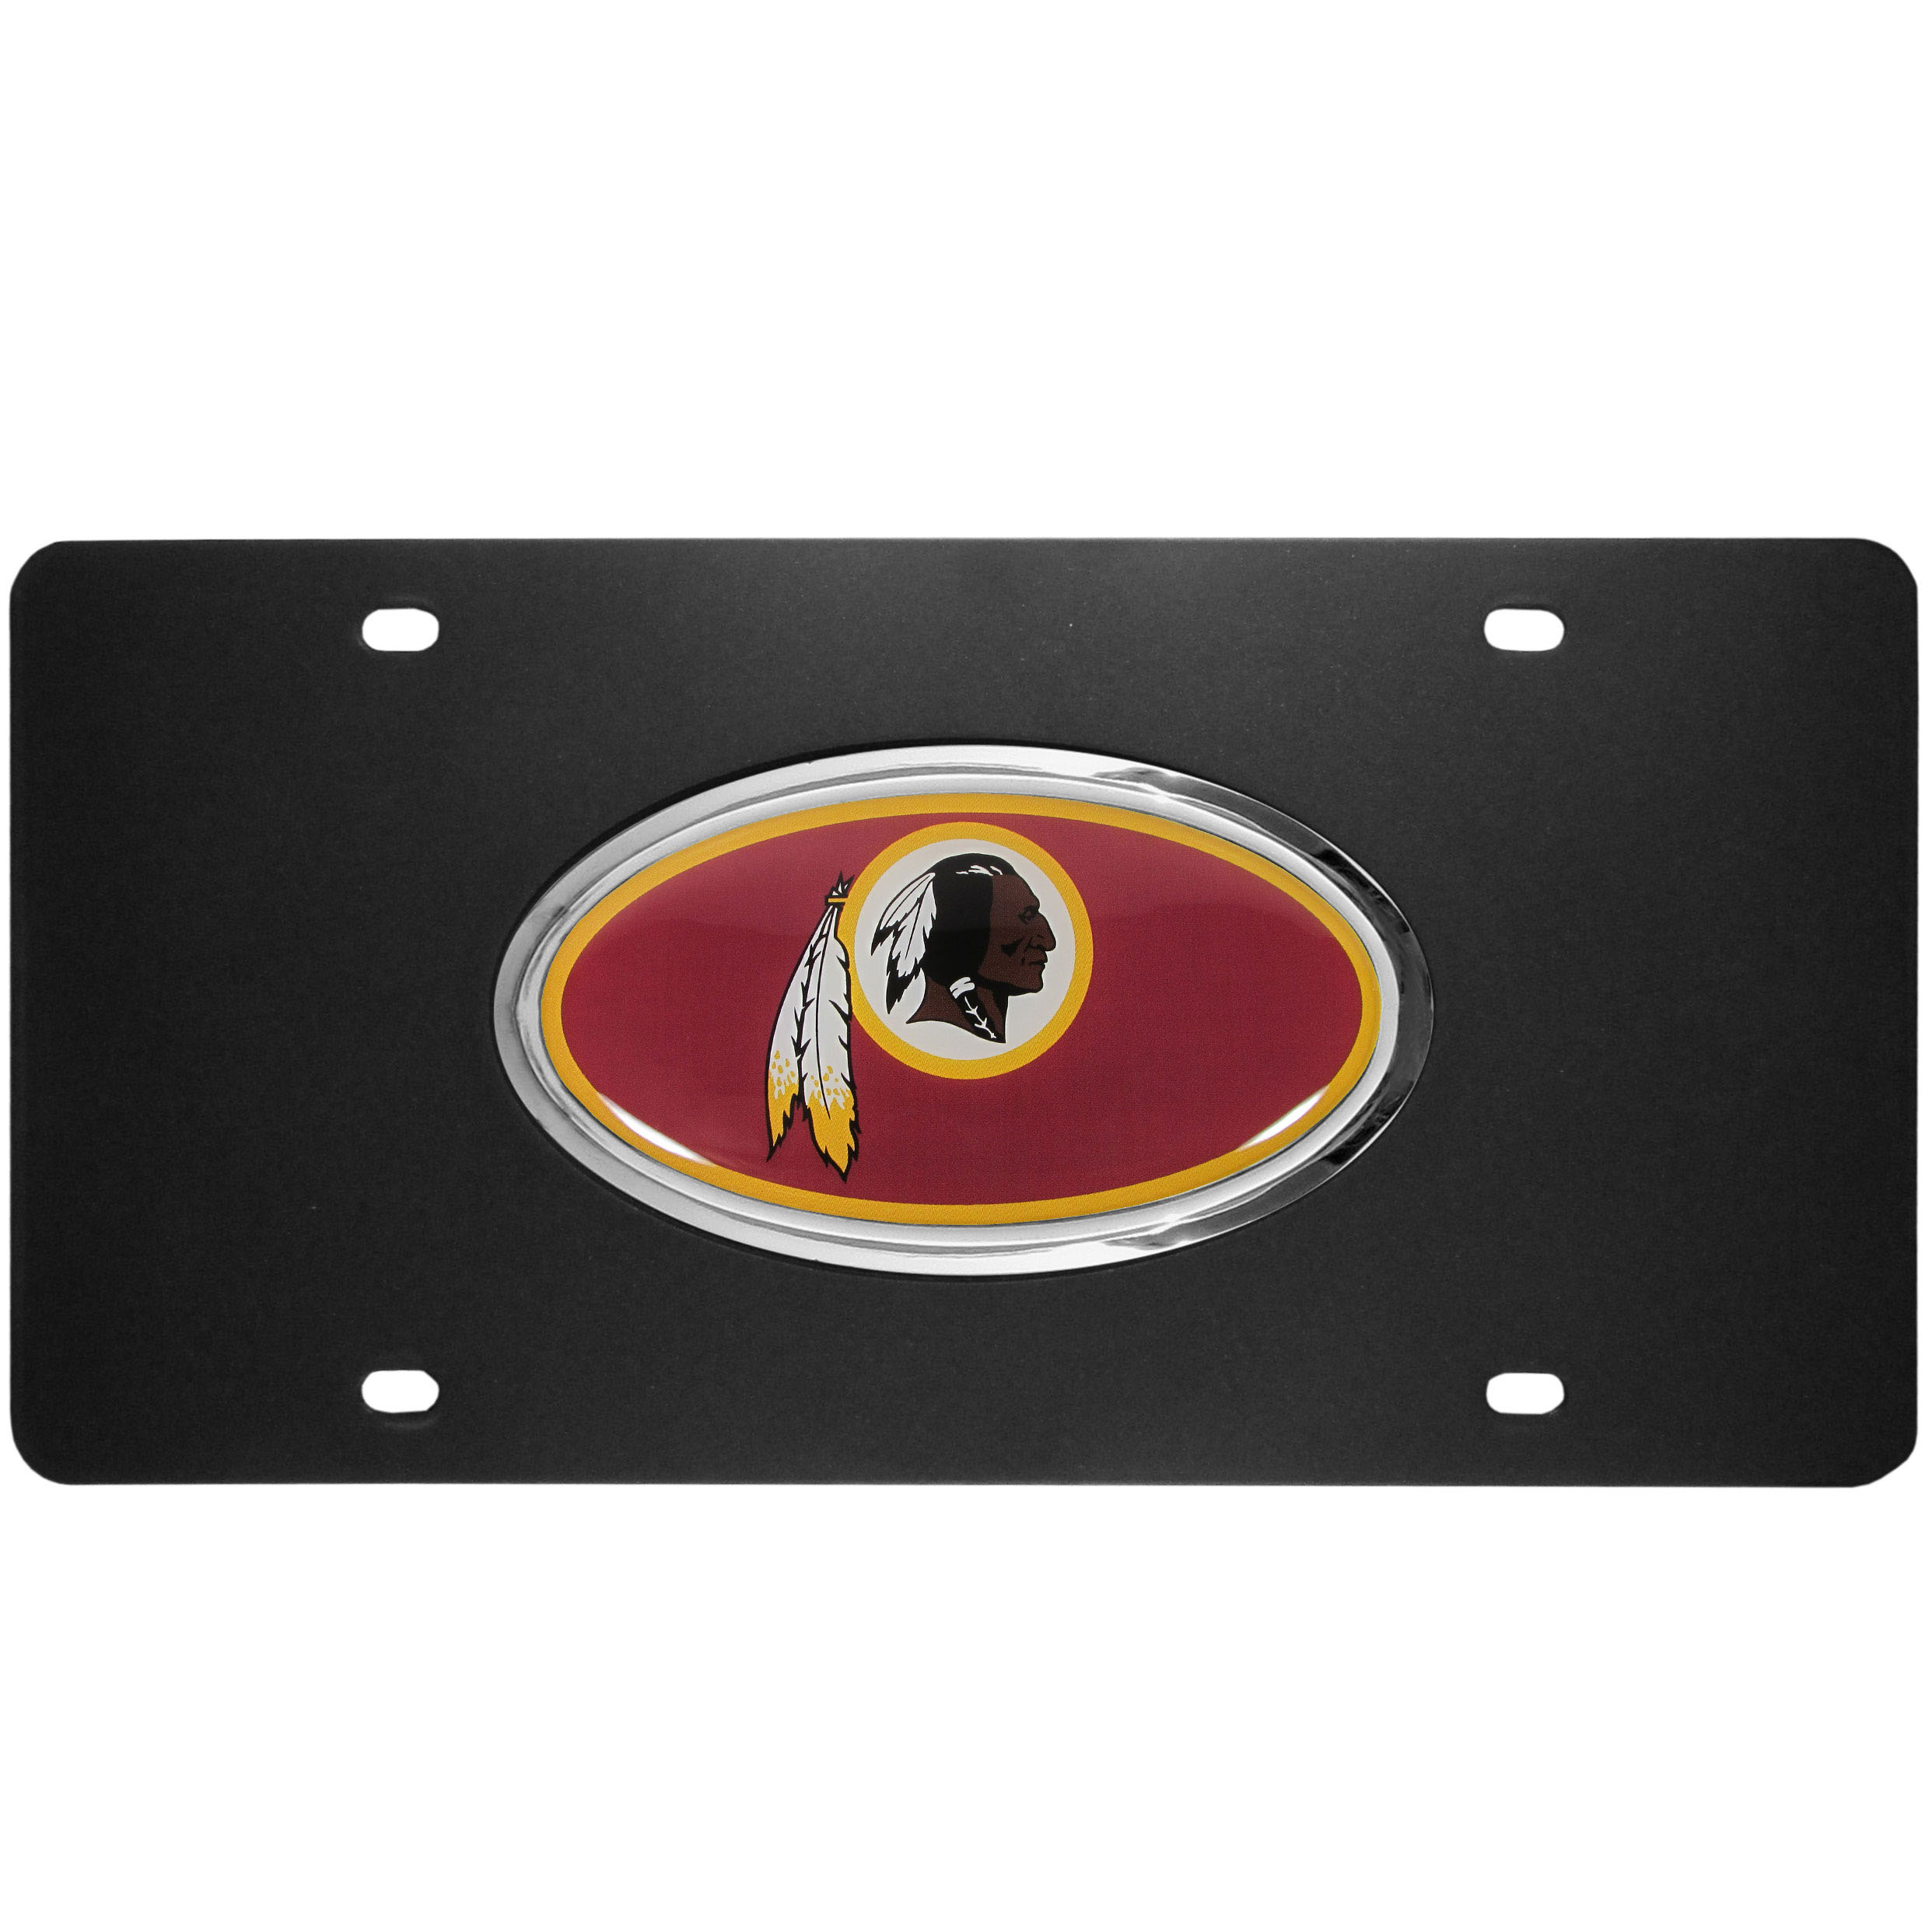 Washington Redskins Acrylic License Plate - Our Washington Redskins acrylic license plate is a step above the rest. It is made of thick, durable acrylic with a matte black finish and raised chrome saddle for the extra large team emblem.